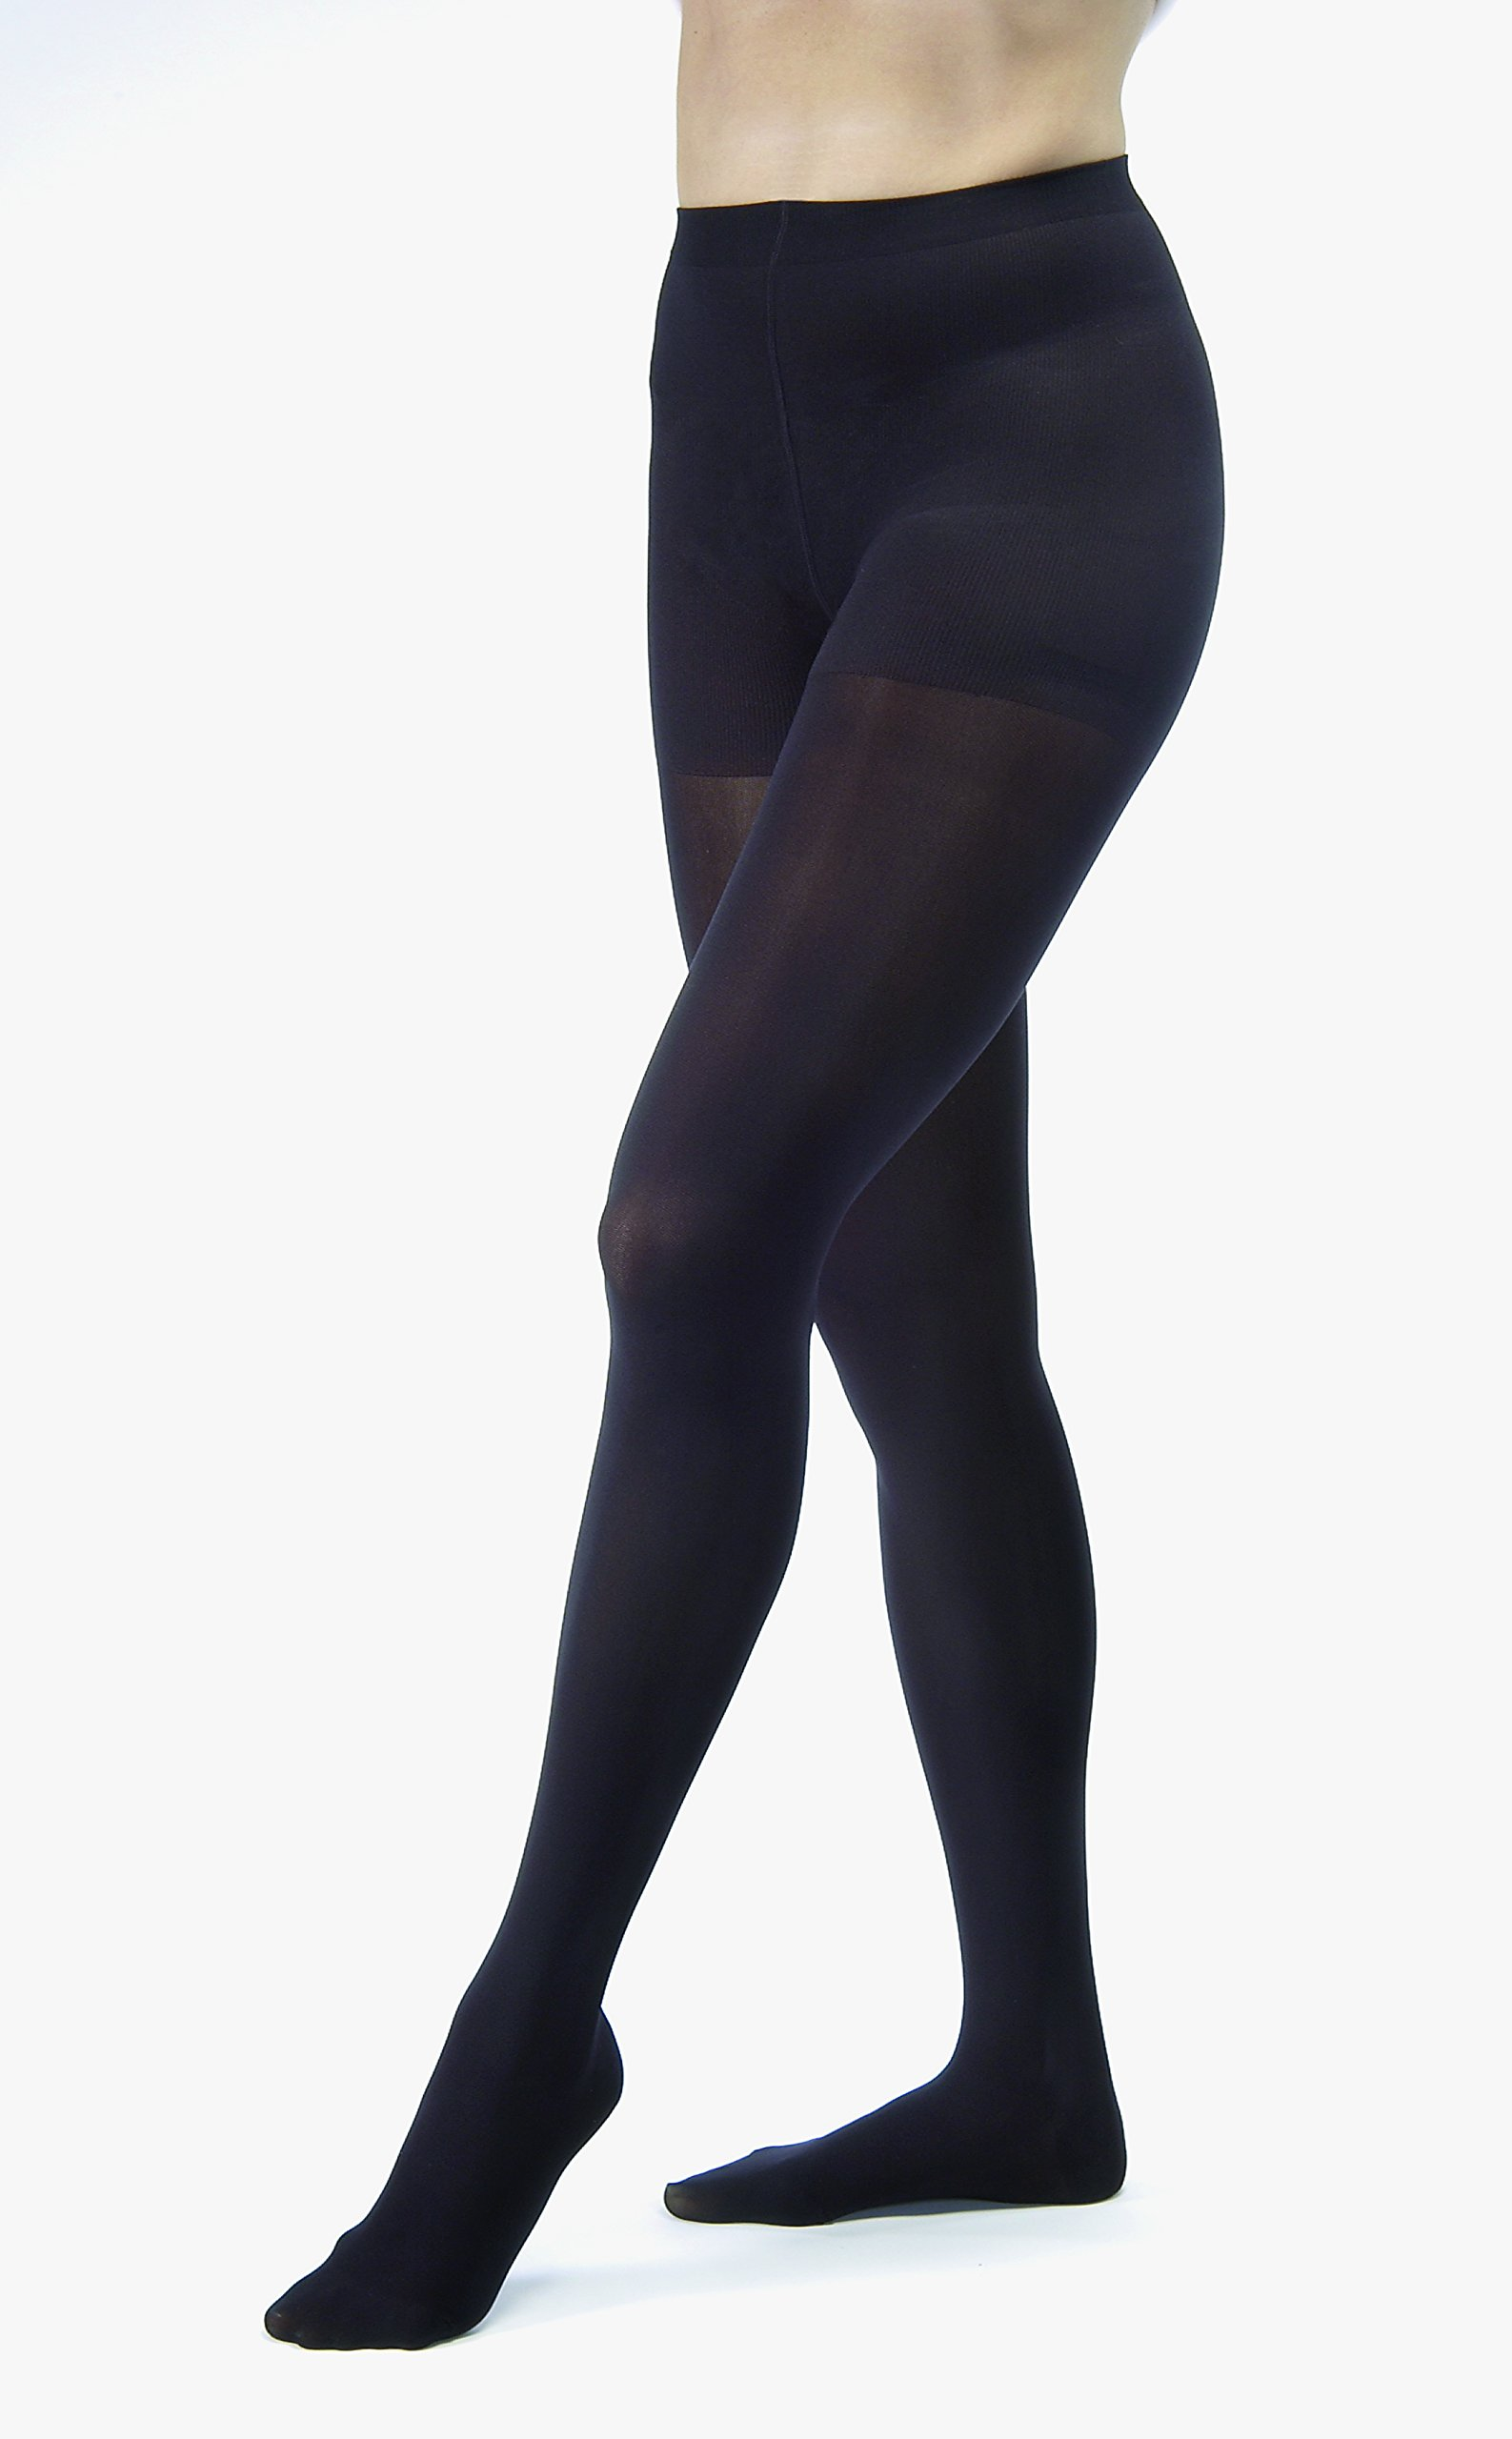 Womens Opaque 30 40 Support Pantyhose